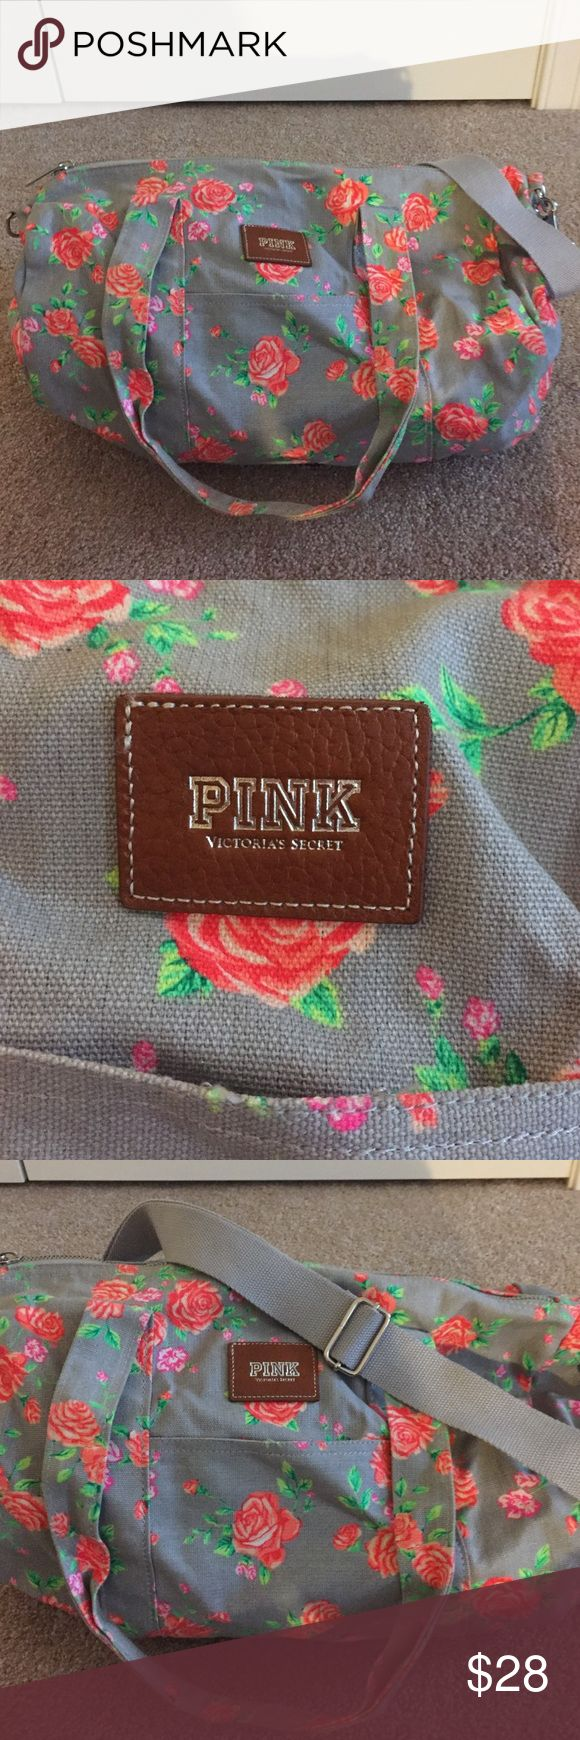 VS Pink floral duffel Used once- small canvas duffel bag great for weekend trips. Has carry handles and a long strap. Will include free Vera Bradley coin purse with purchase. ALL OFFERS CONSIDERED PINK Victoria's Secret Bags Travel Bags